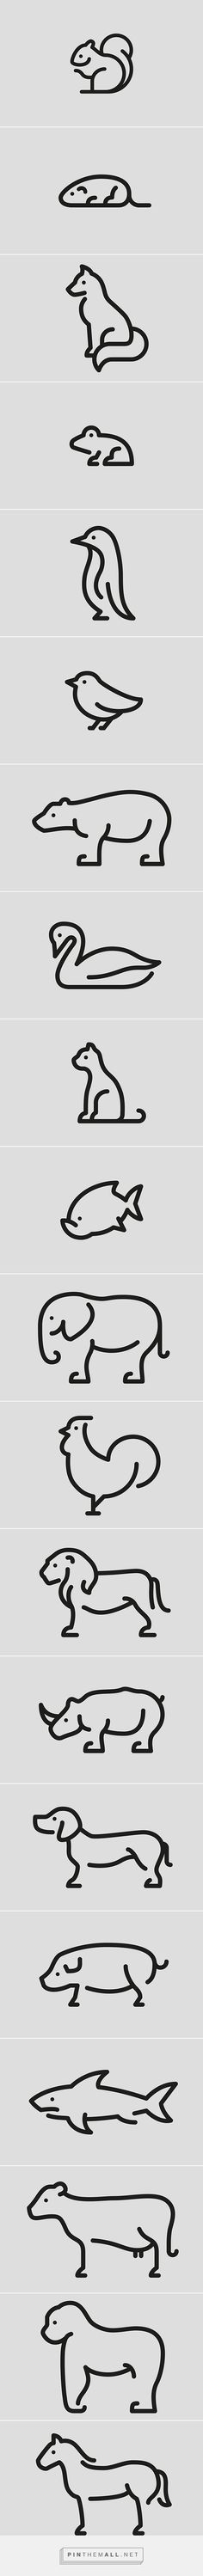 Animal Pictograms on Behance